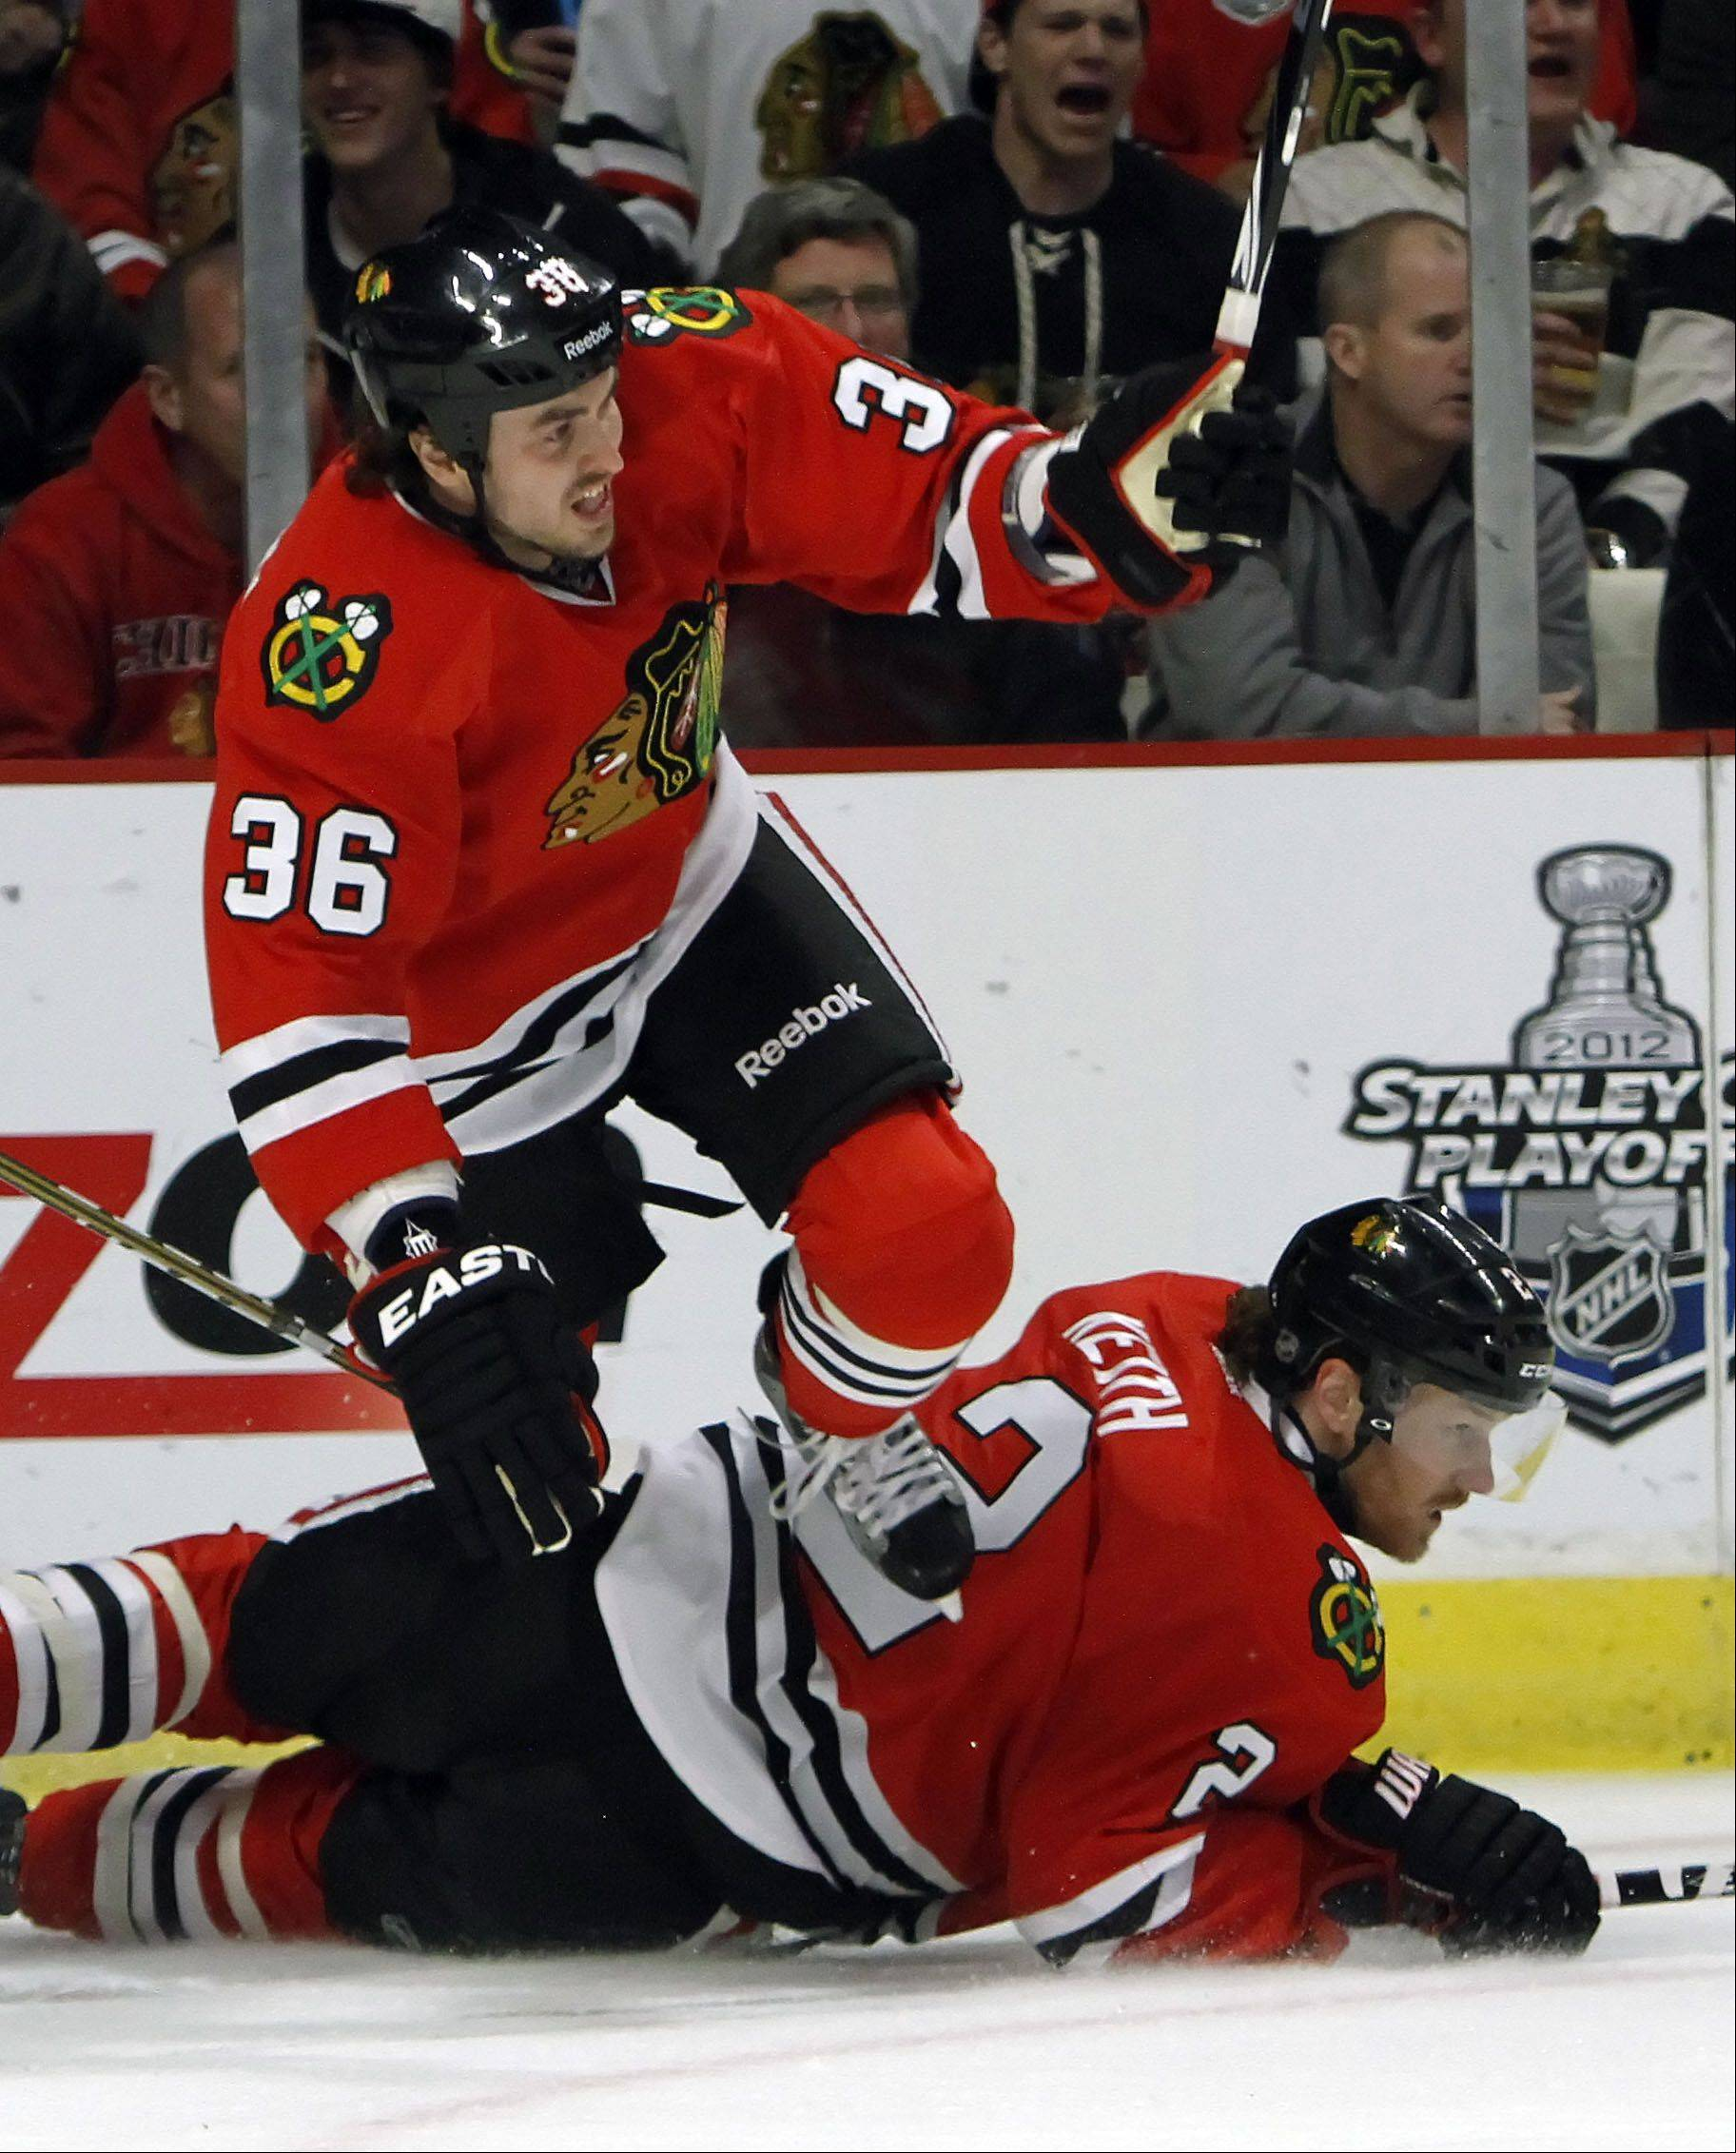 Chicago Blackhawks' center Dave Bolland and defenseman Duncan Keith collide .